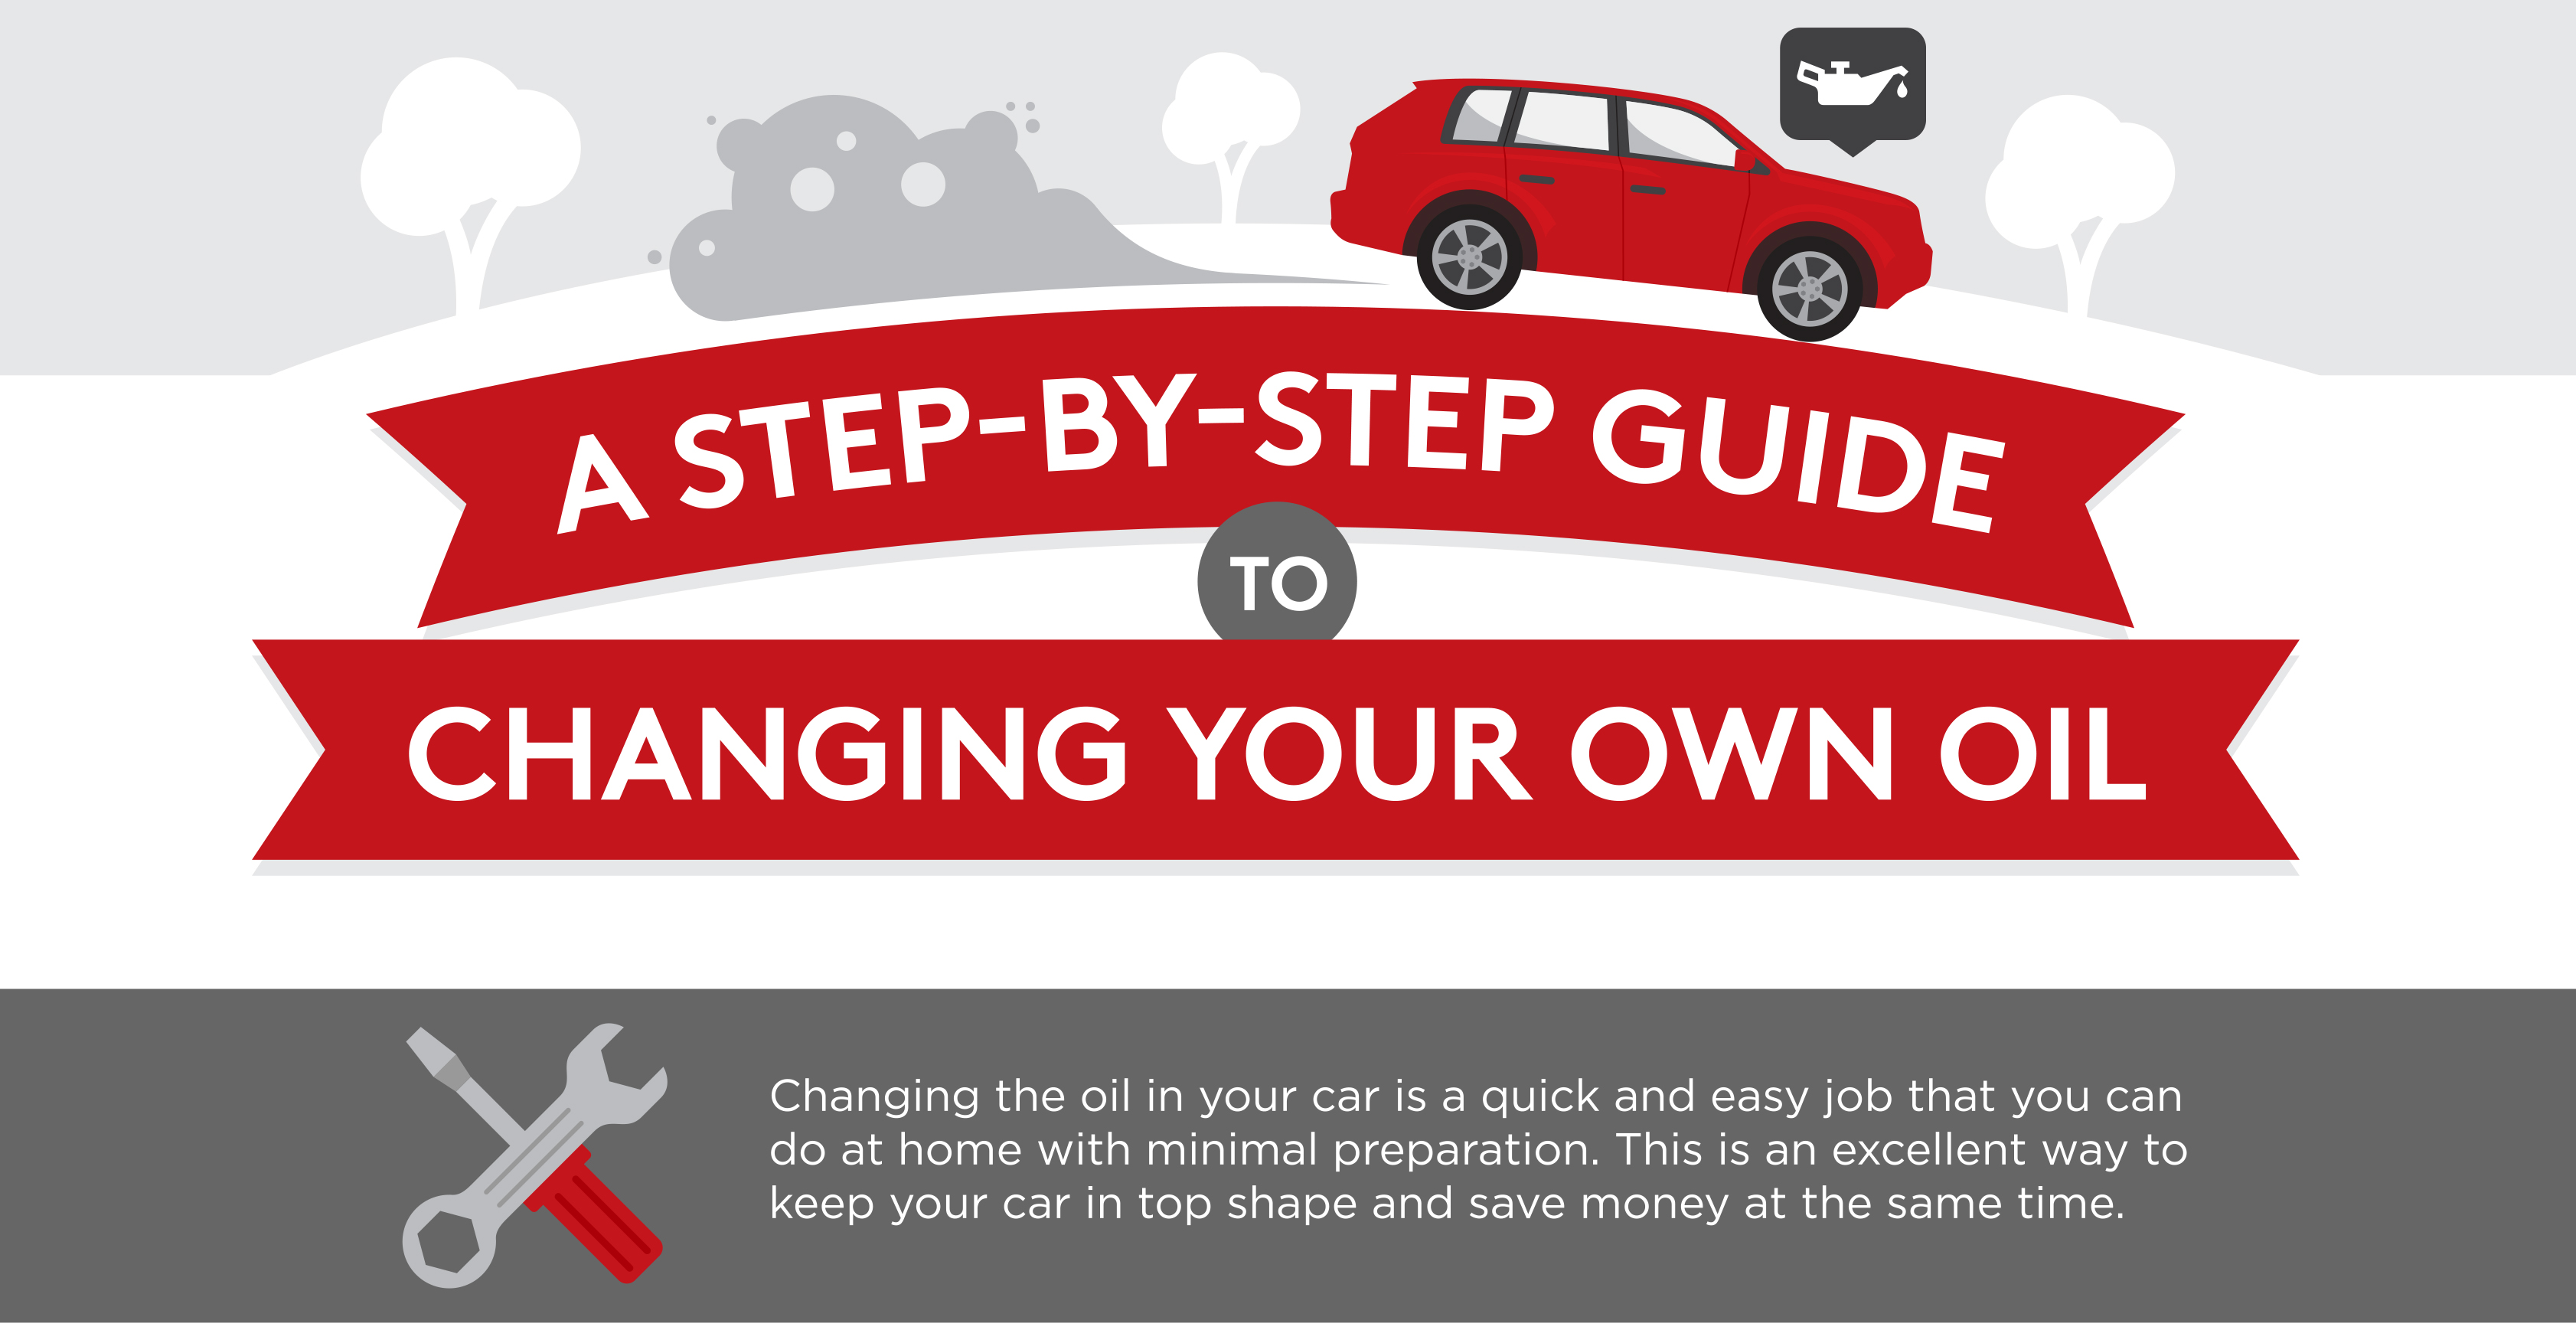 Oil Change Guide